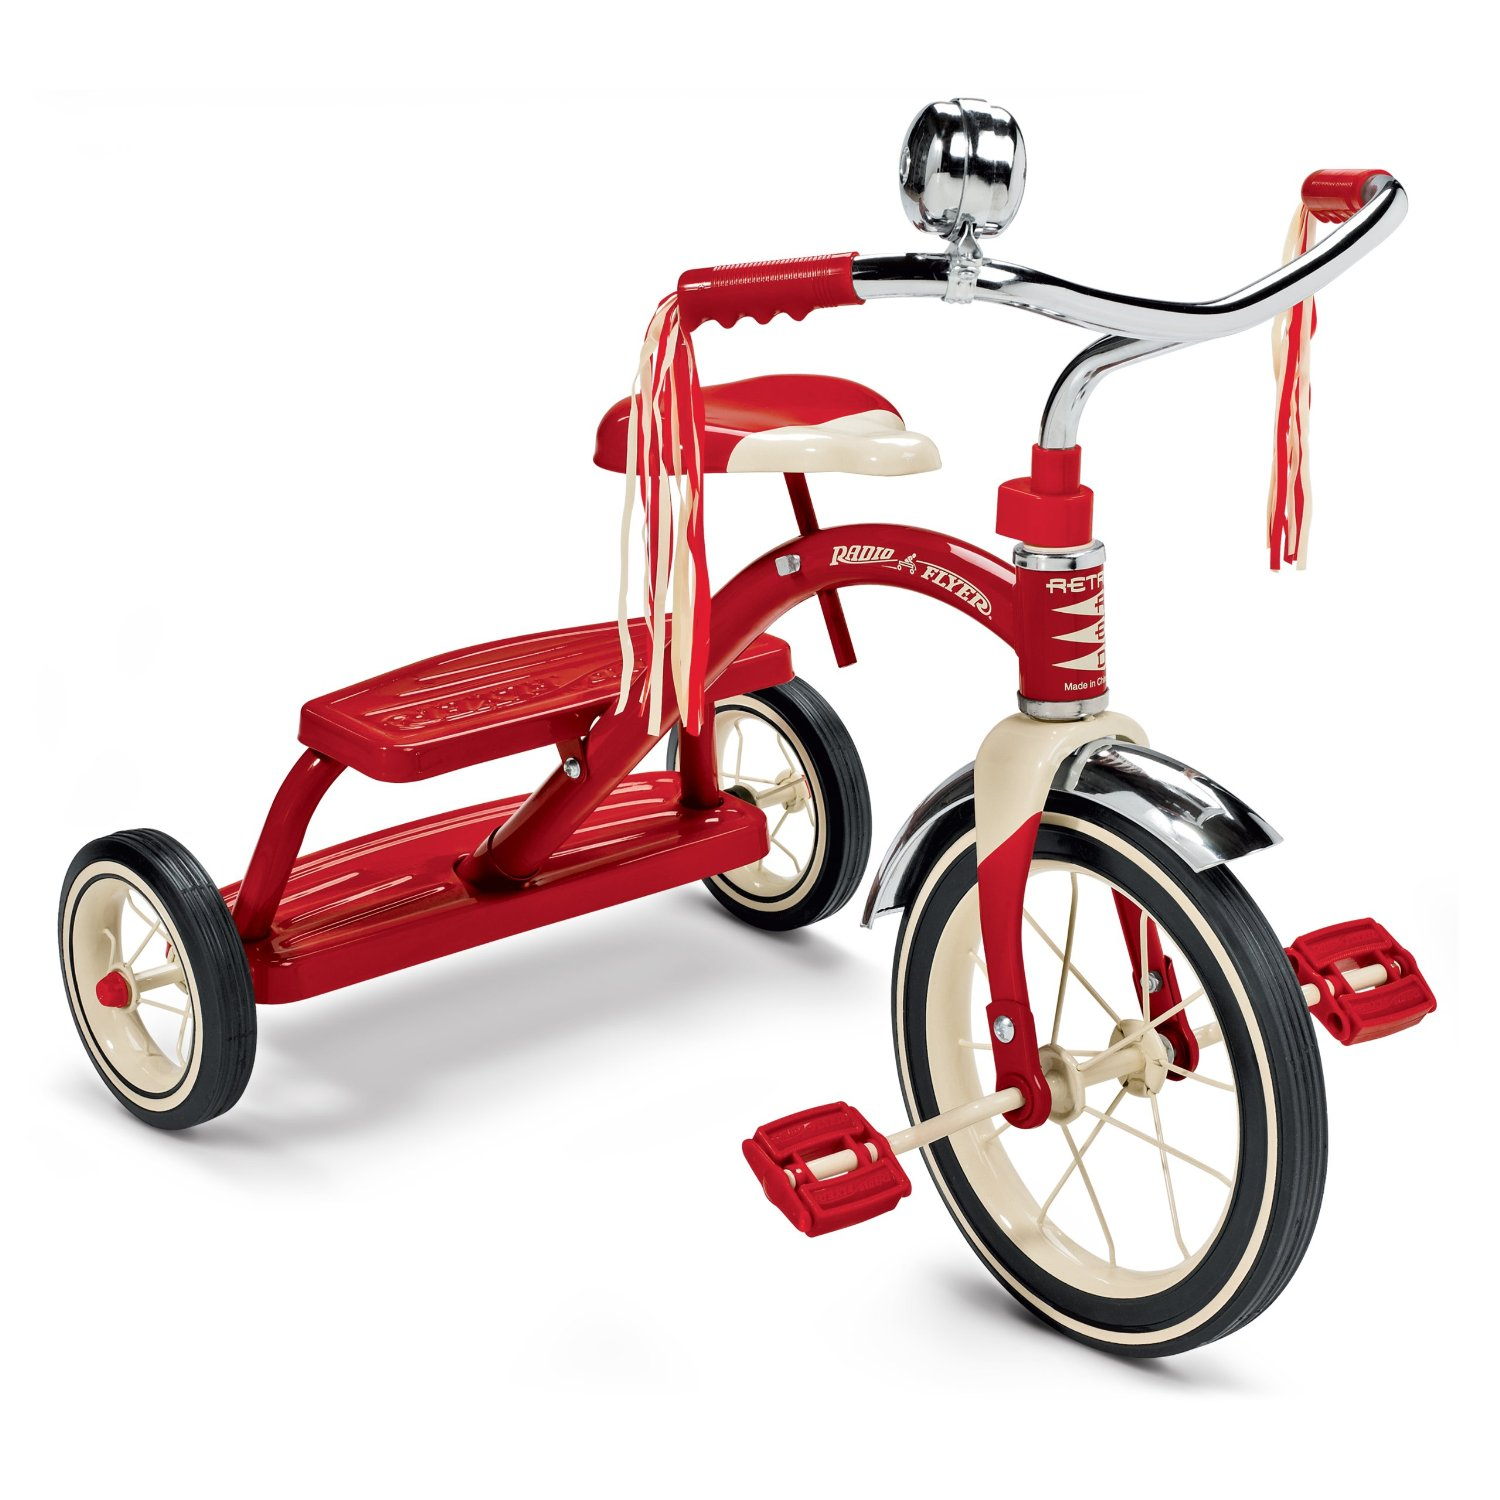 Tricycle clipart vector Dual Red Tricycle Deck Red